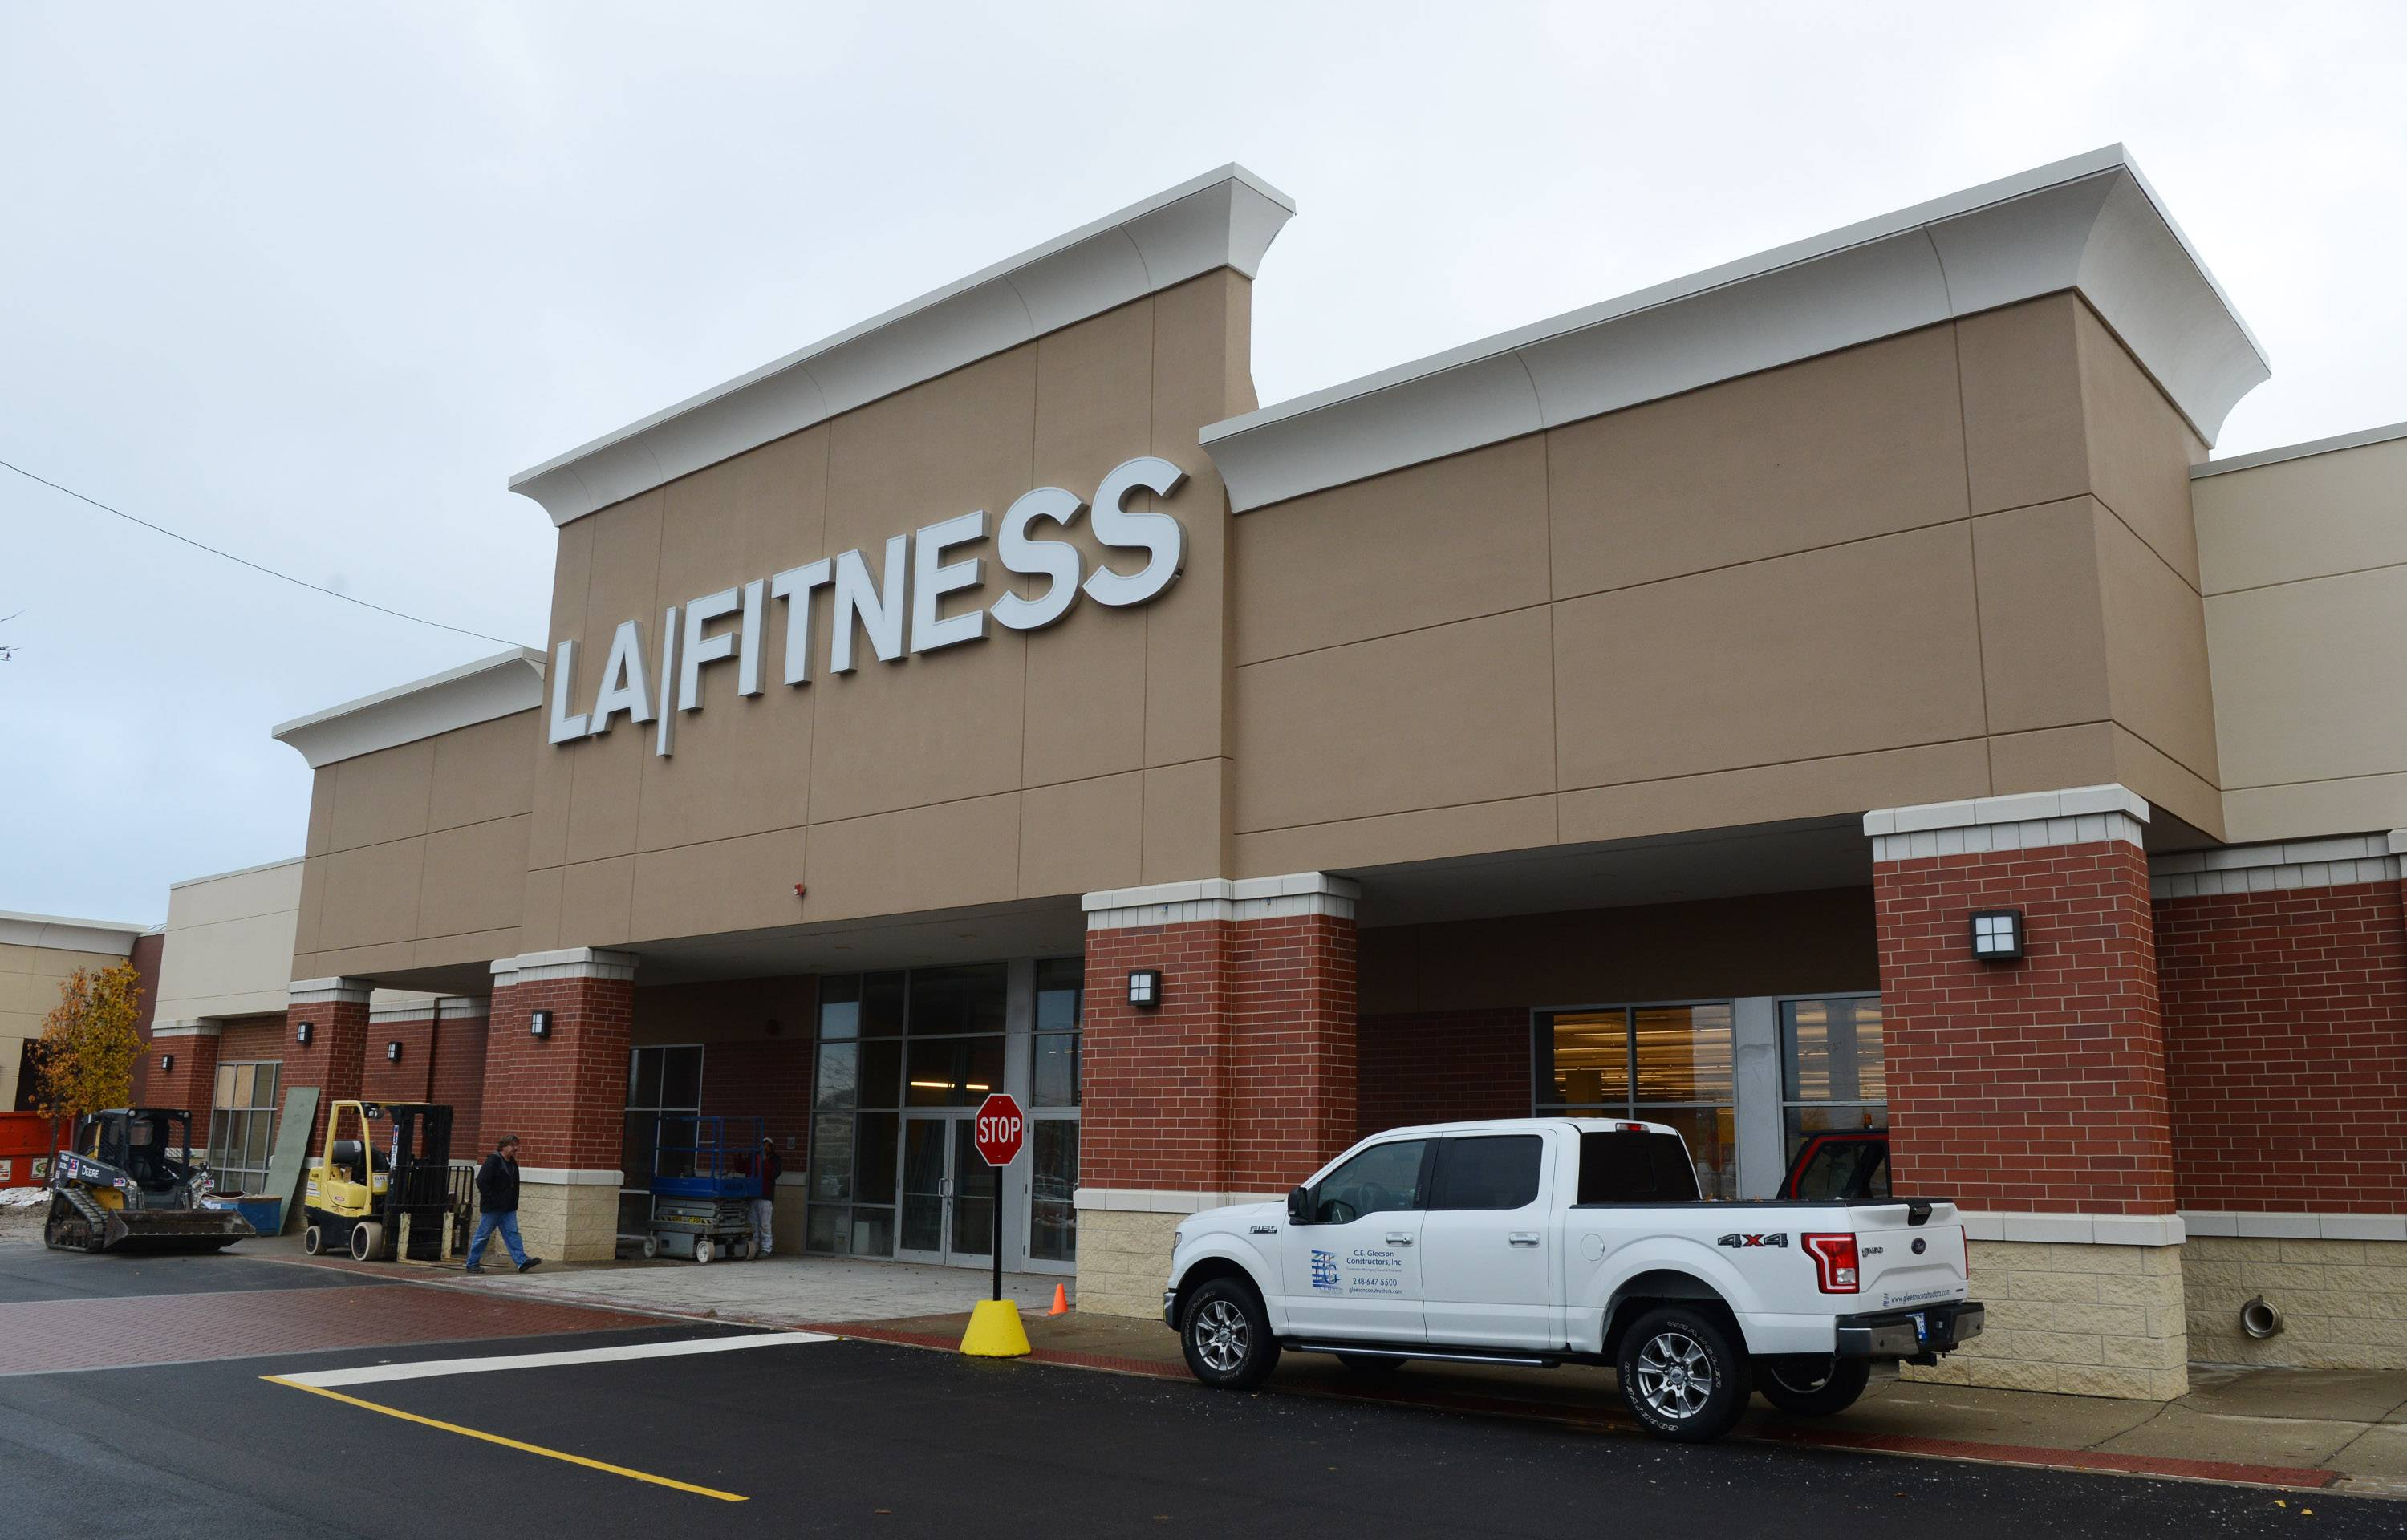 A number of new businesses are opening in Arlington Heights, including an LA Fitness at the Town & Country shopping center. Crews have been working for months to renovate the space left vacant in October 2015 by Ashley Furniture HomeStore.